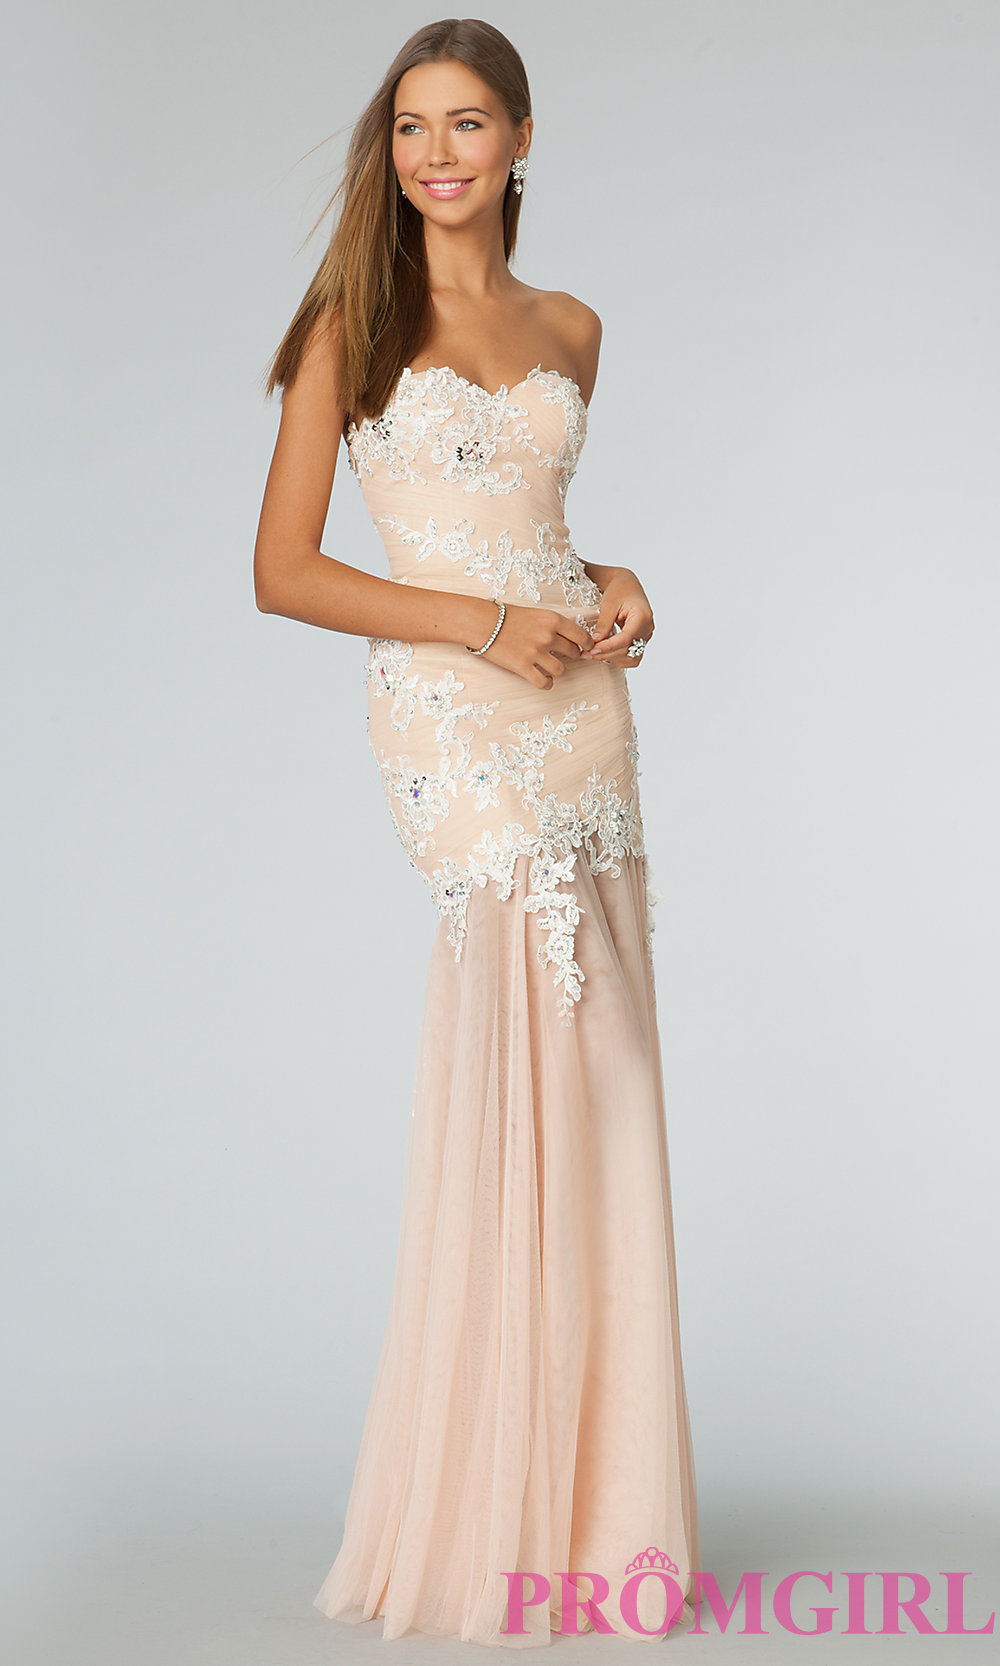 Strapless Long Prom Dress JVN by Jovani